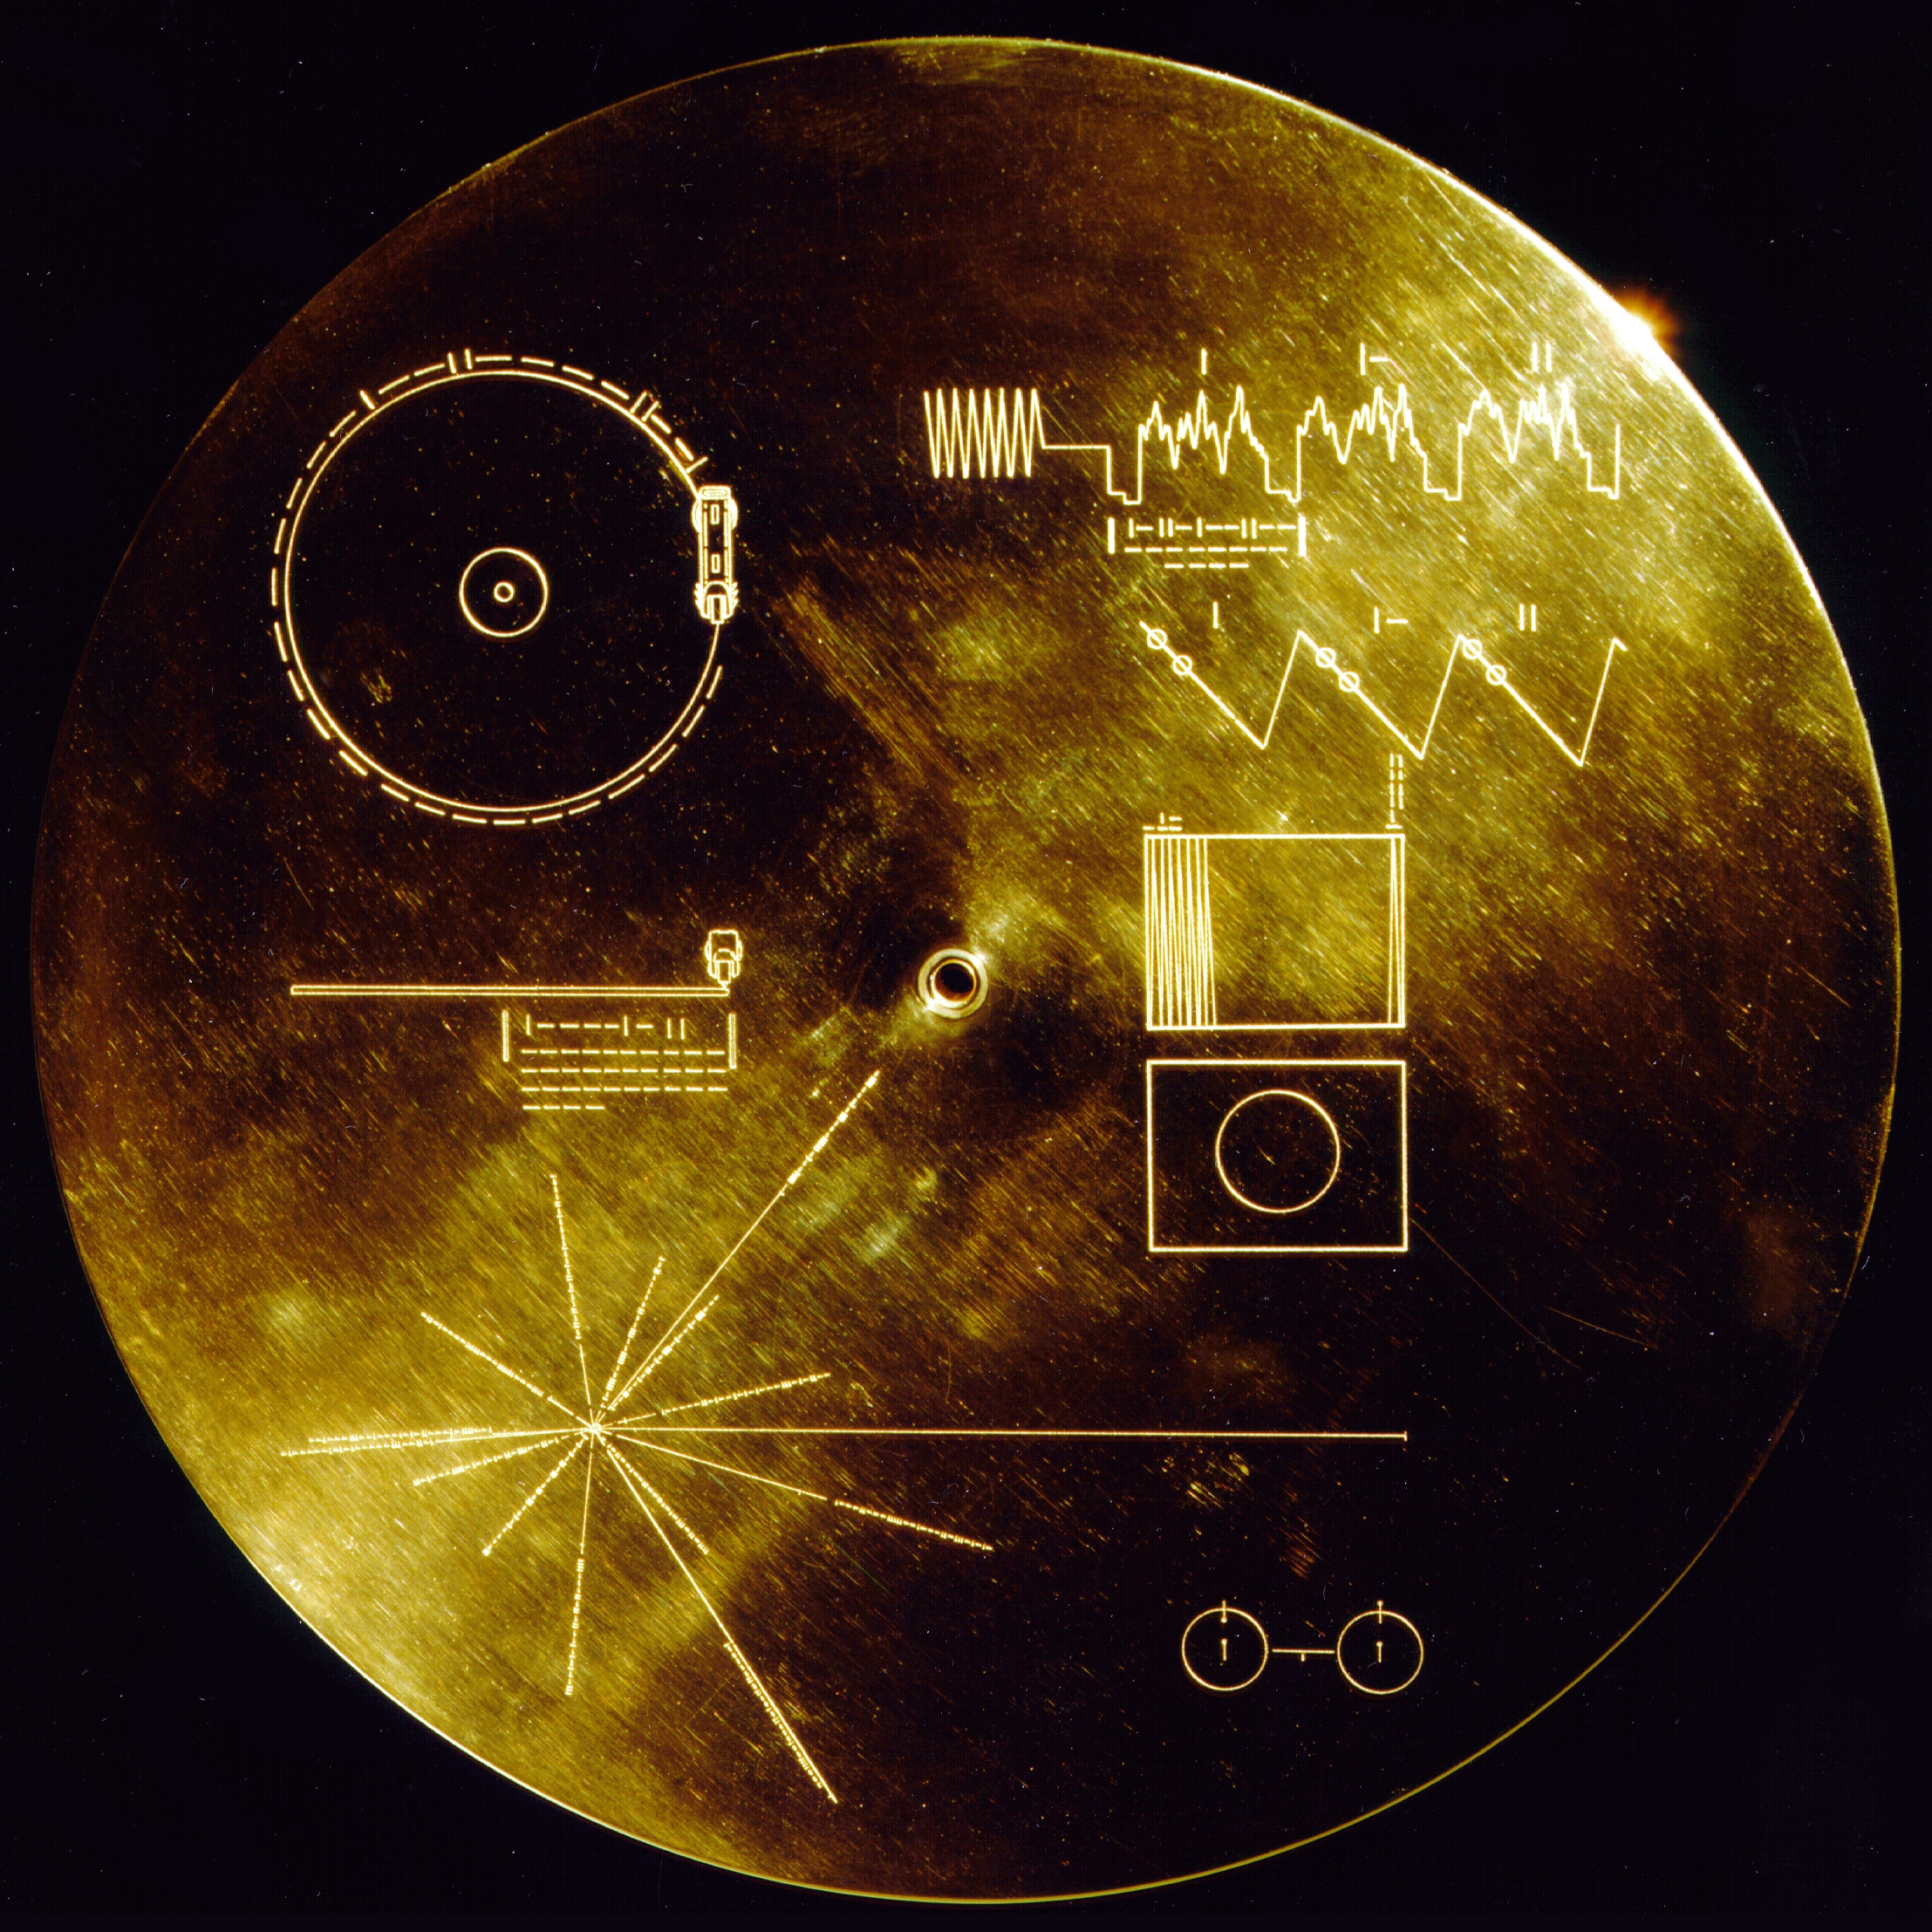 The Golden record - Inspiration for the splines based on the etched binary code.